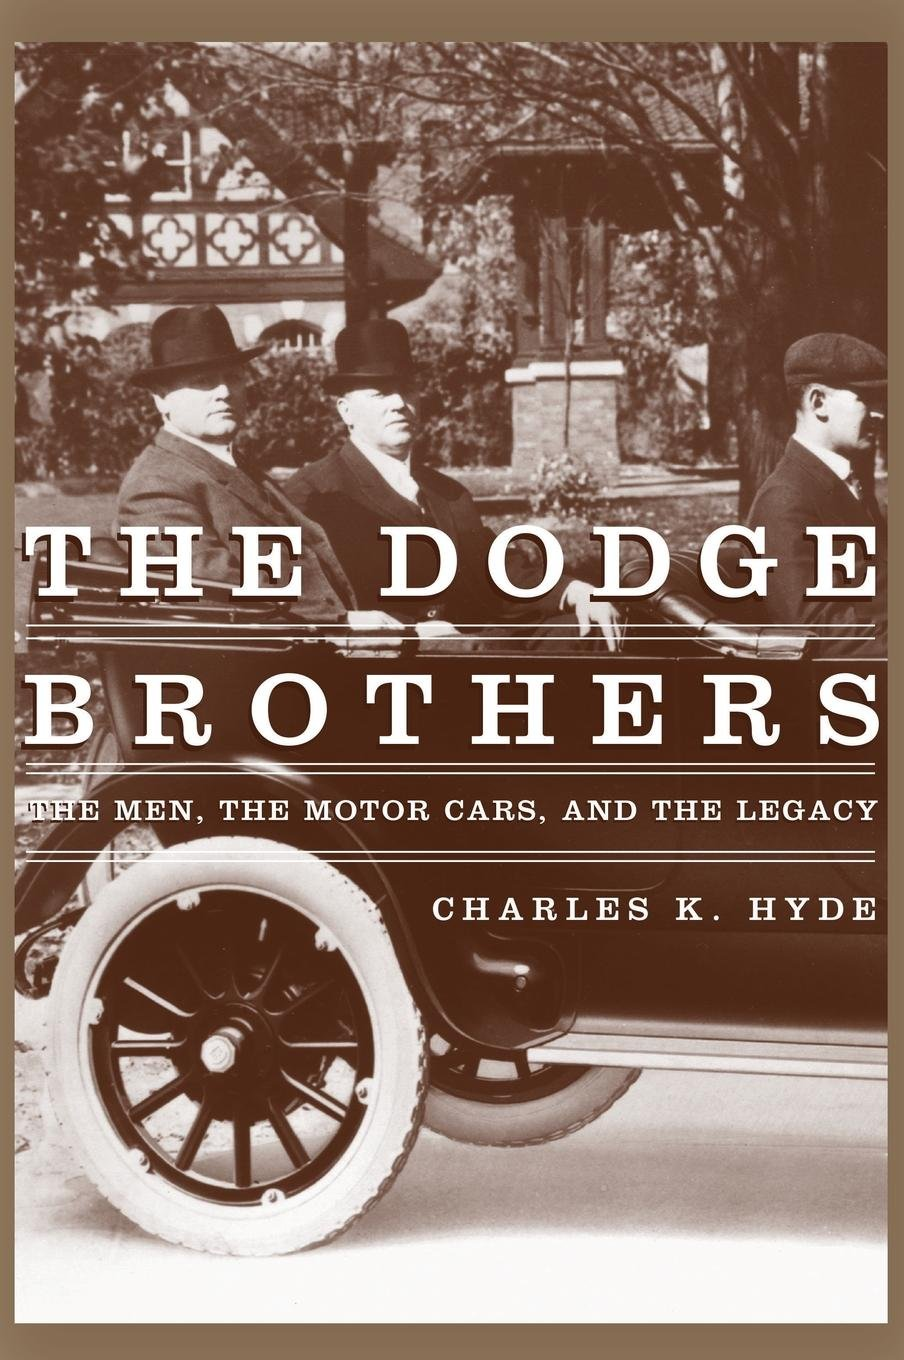 The Dodge Brothers: The Men, the Motor Cars, and the Legacy (Great Lakes Books Series) by Wayne State University Press (Image #1)